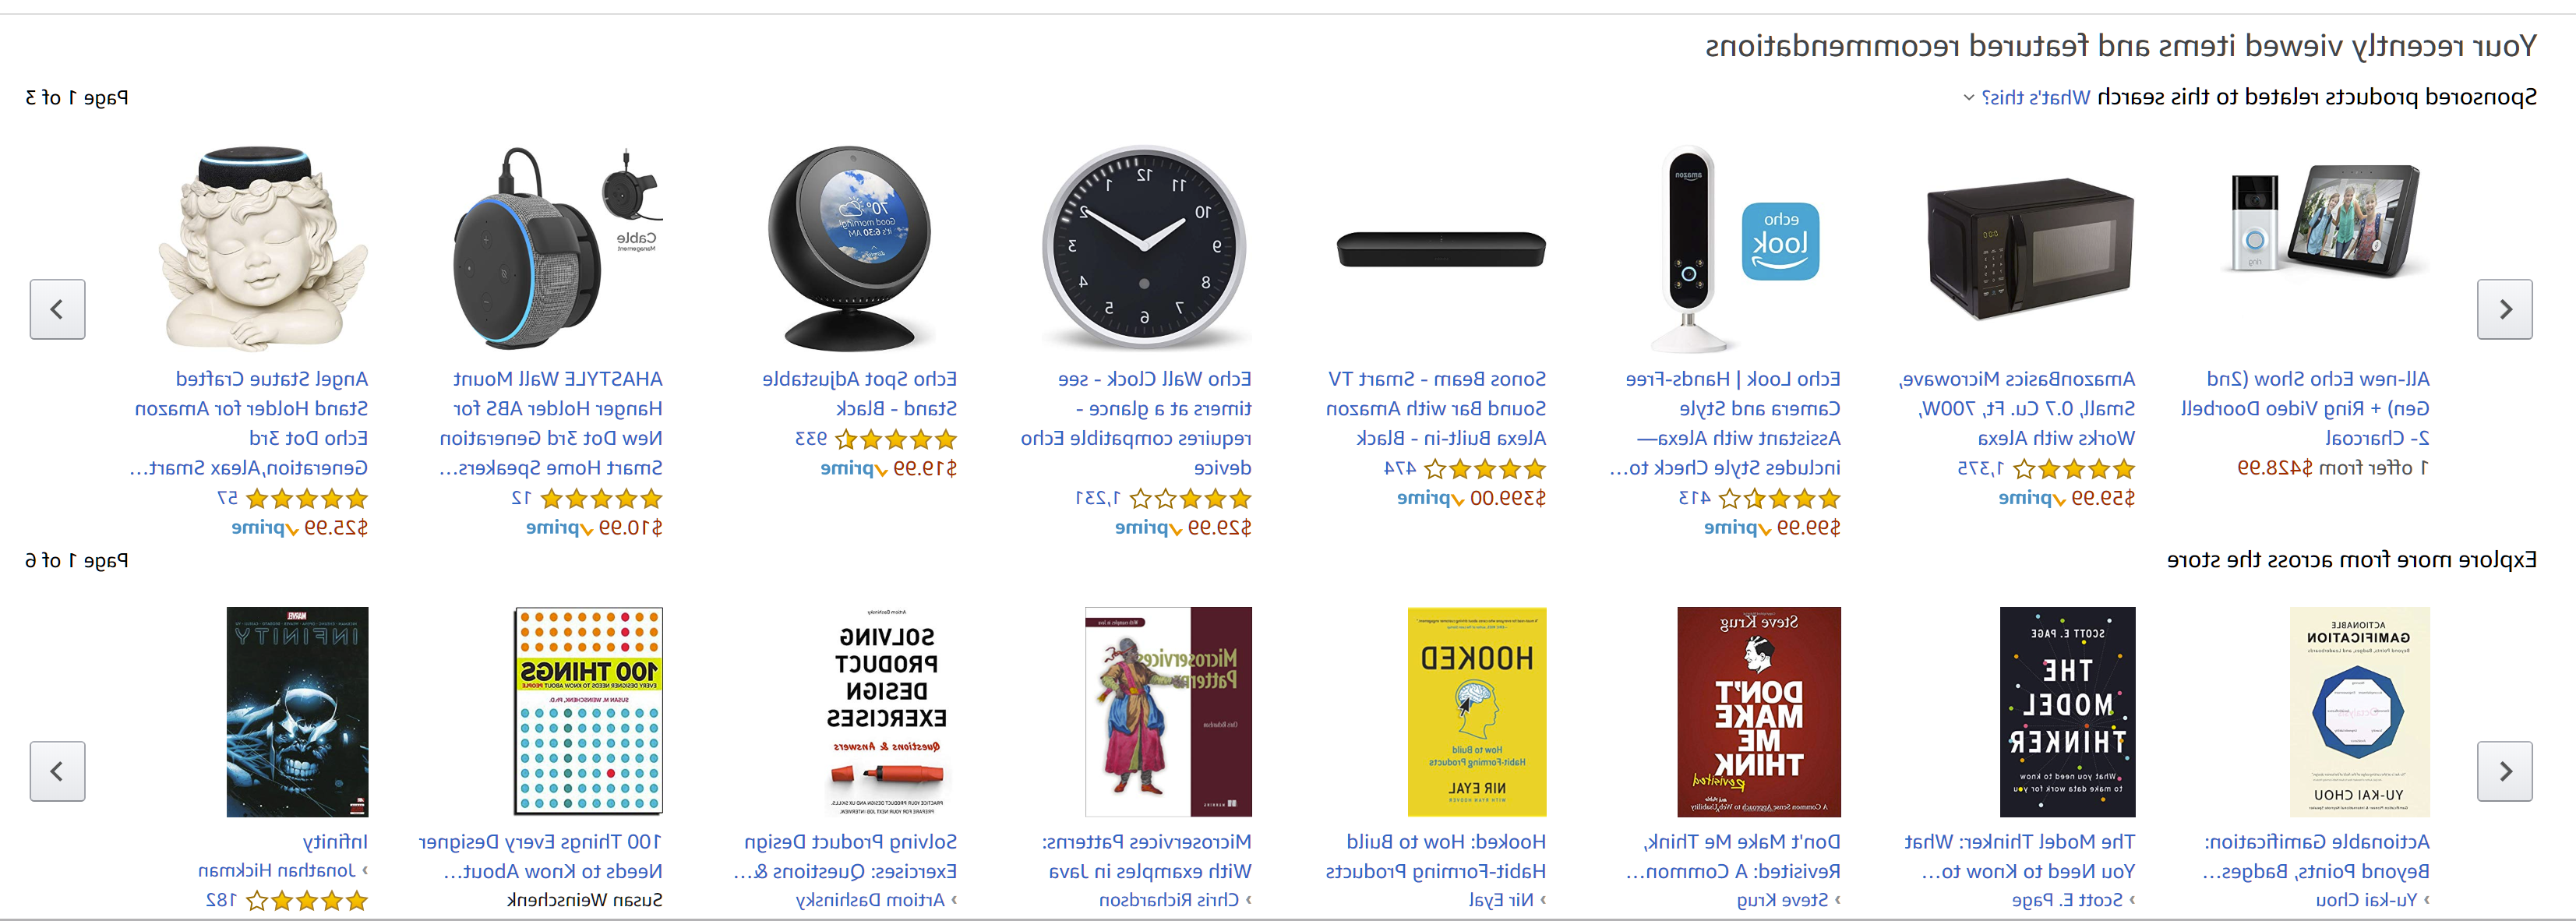 Why are Amazon recommendations so bad?